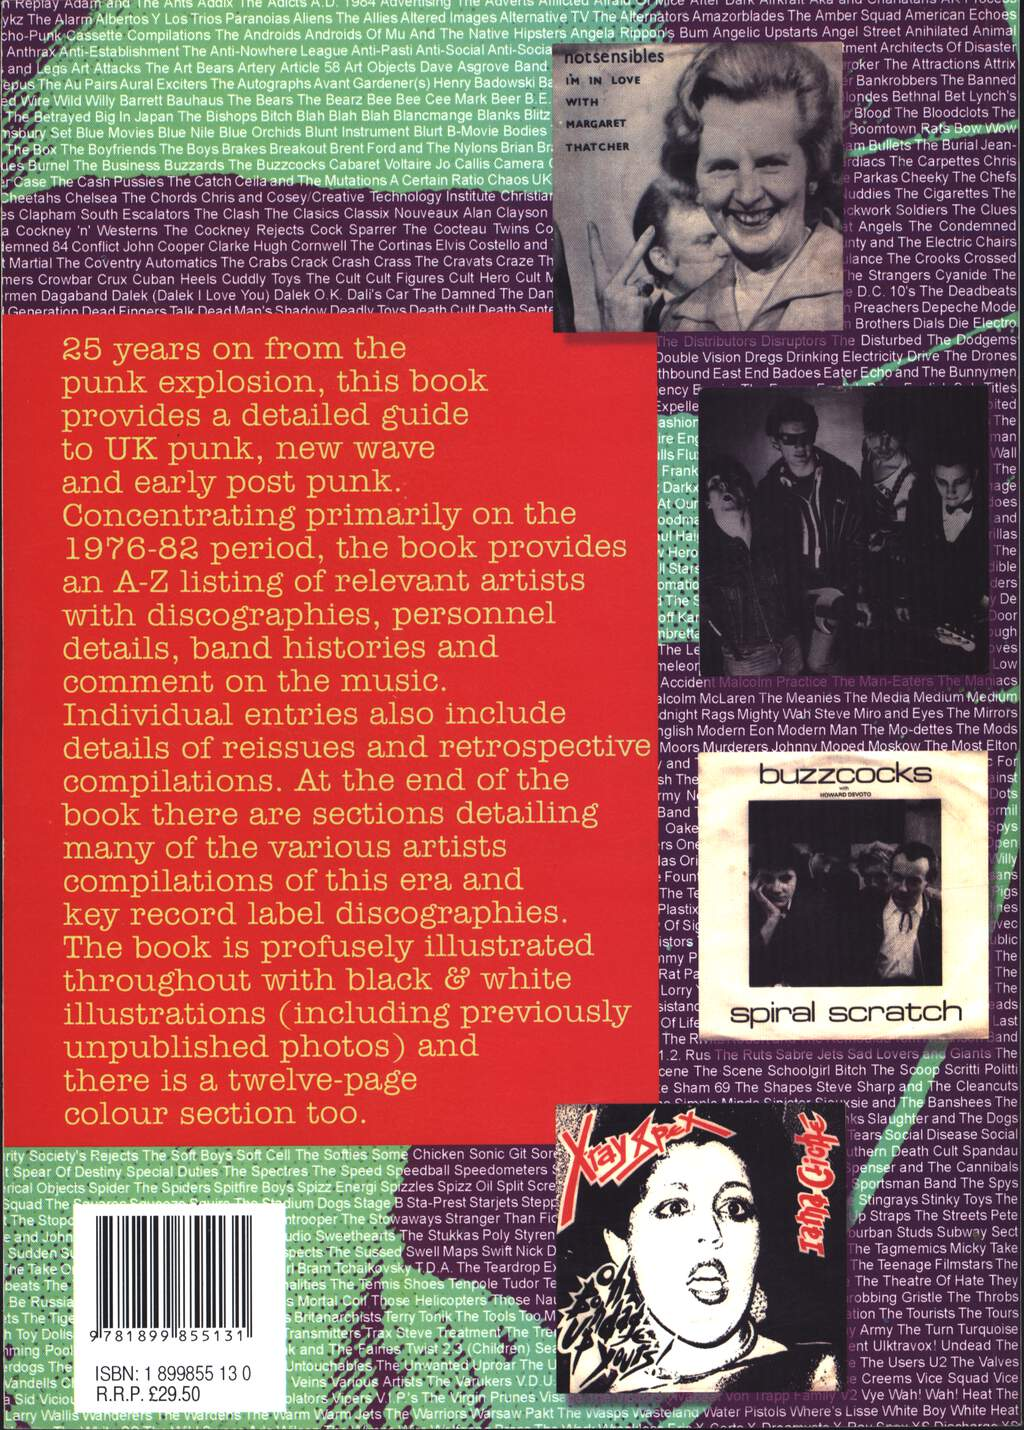 Joynson, Vernon: Up Yours! Guide To UK Punk, New Wave and early Post Punk, Book